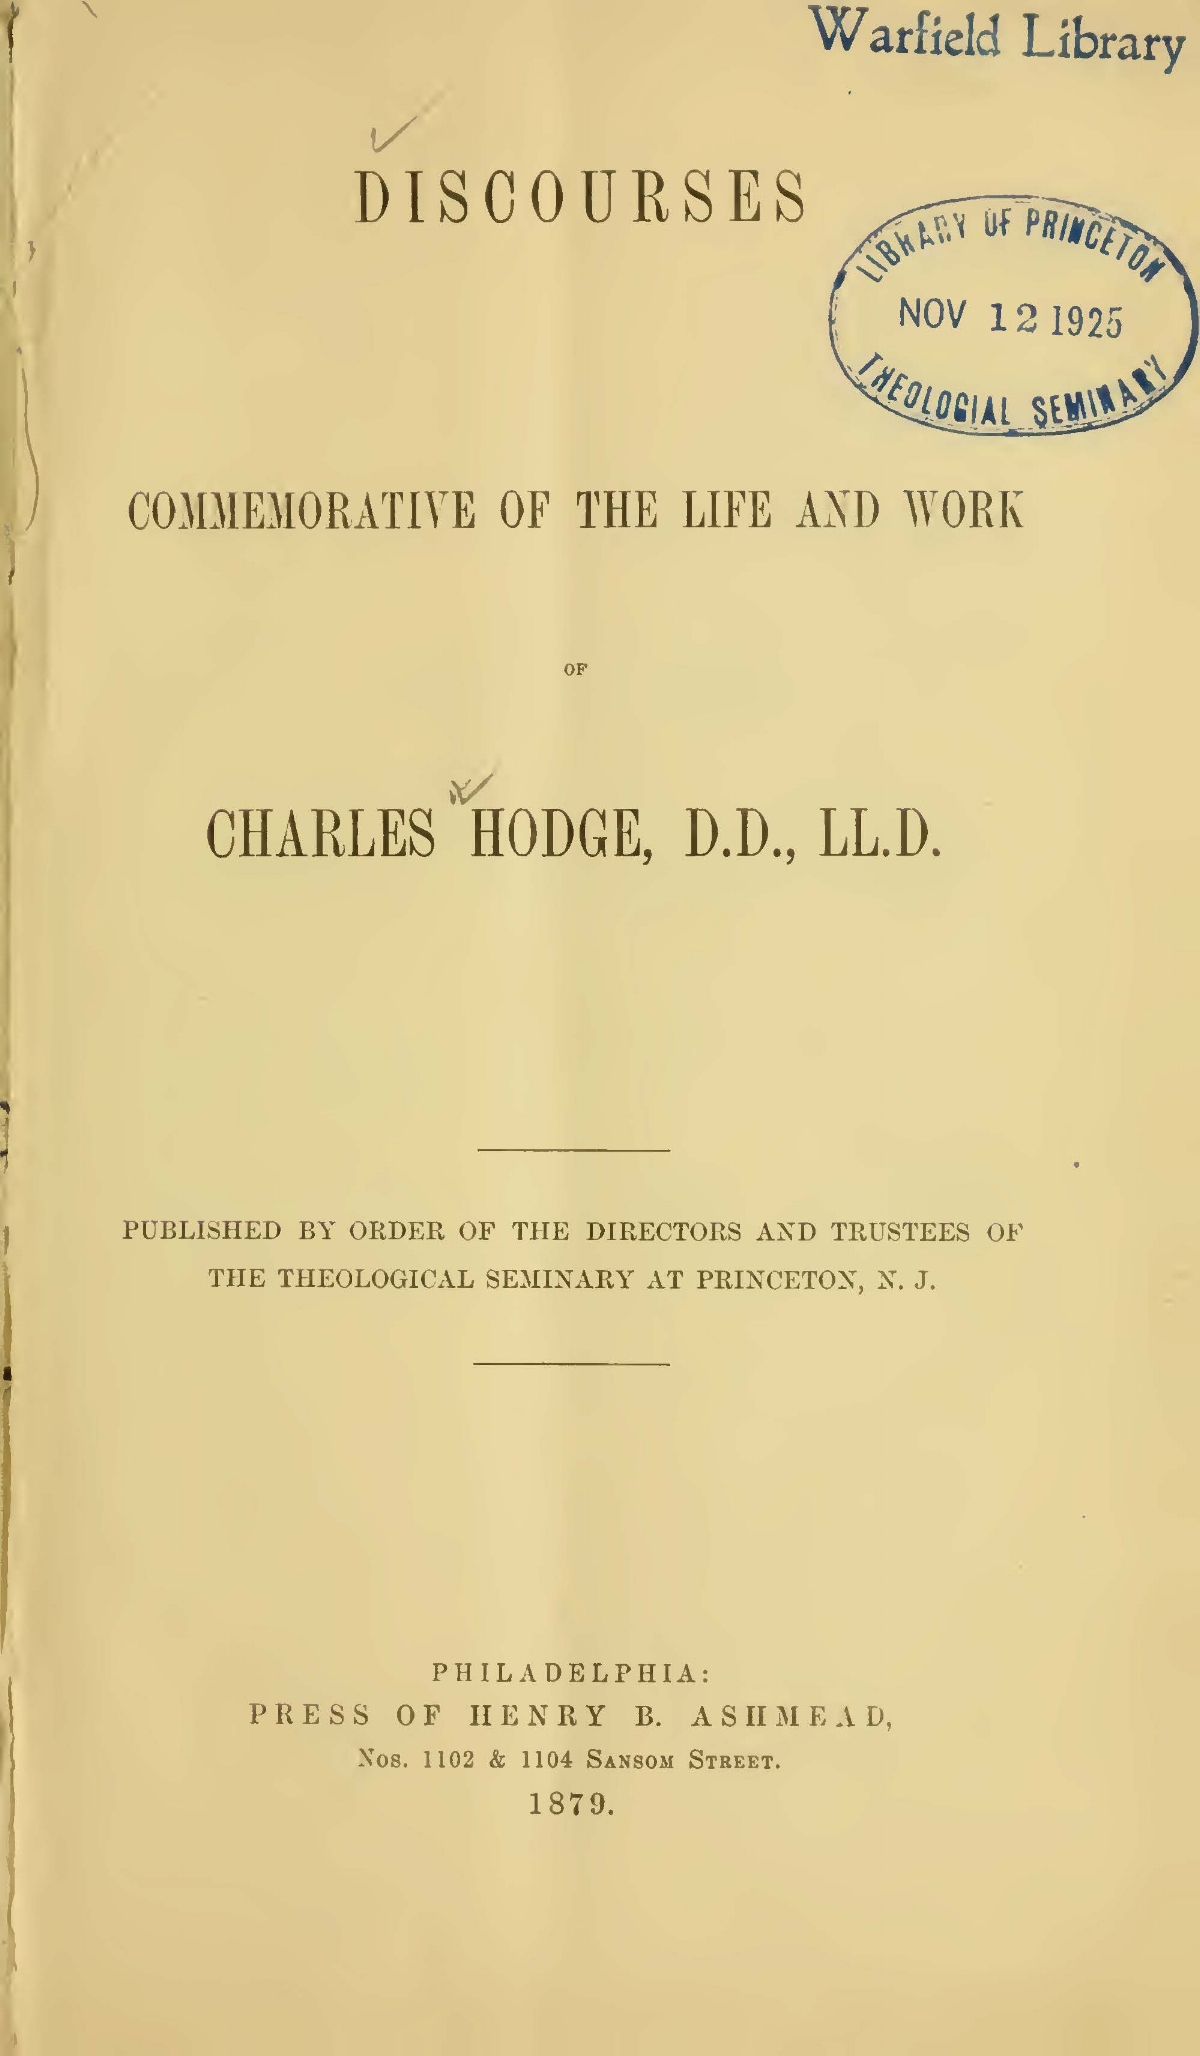 Paxton, William Miller, Discourses Commemorative of the Life and Work of Charles Hodge Title Page.jpg